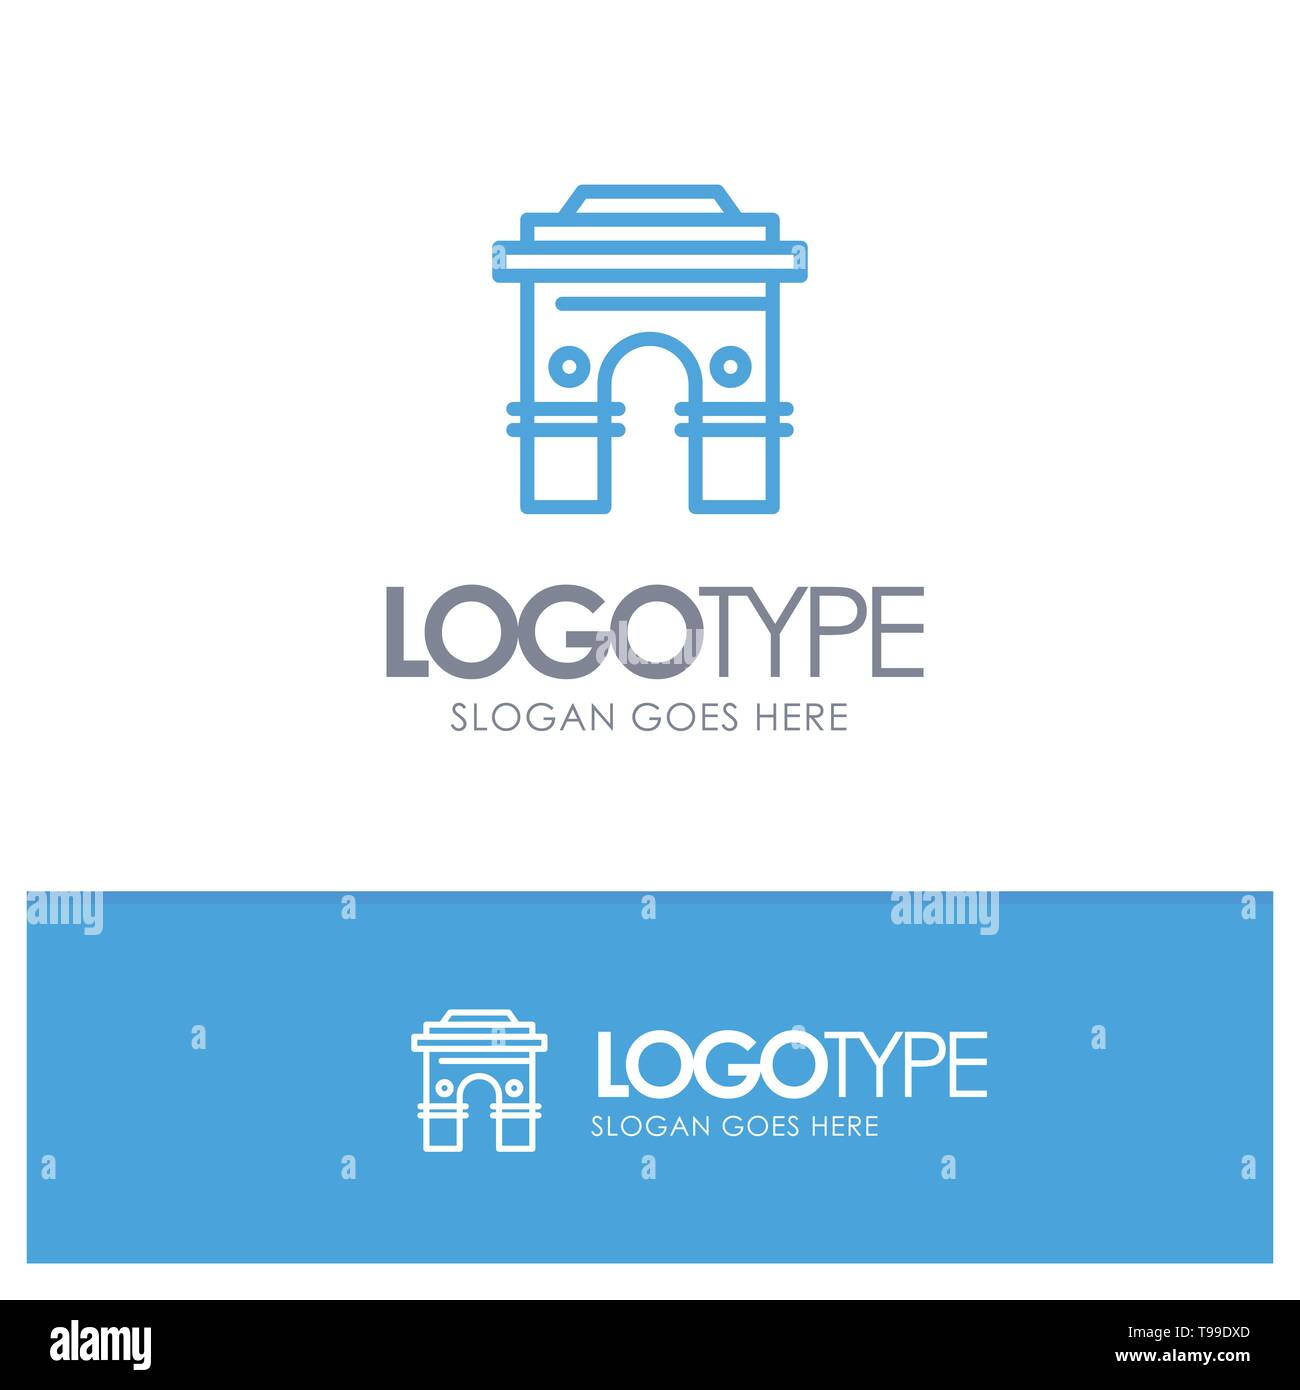 Culture, Global, Hinduism, India, Indian, Srilanka, Temple Blue Outline Logo Place for Tagline - Stock Image